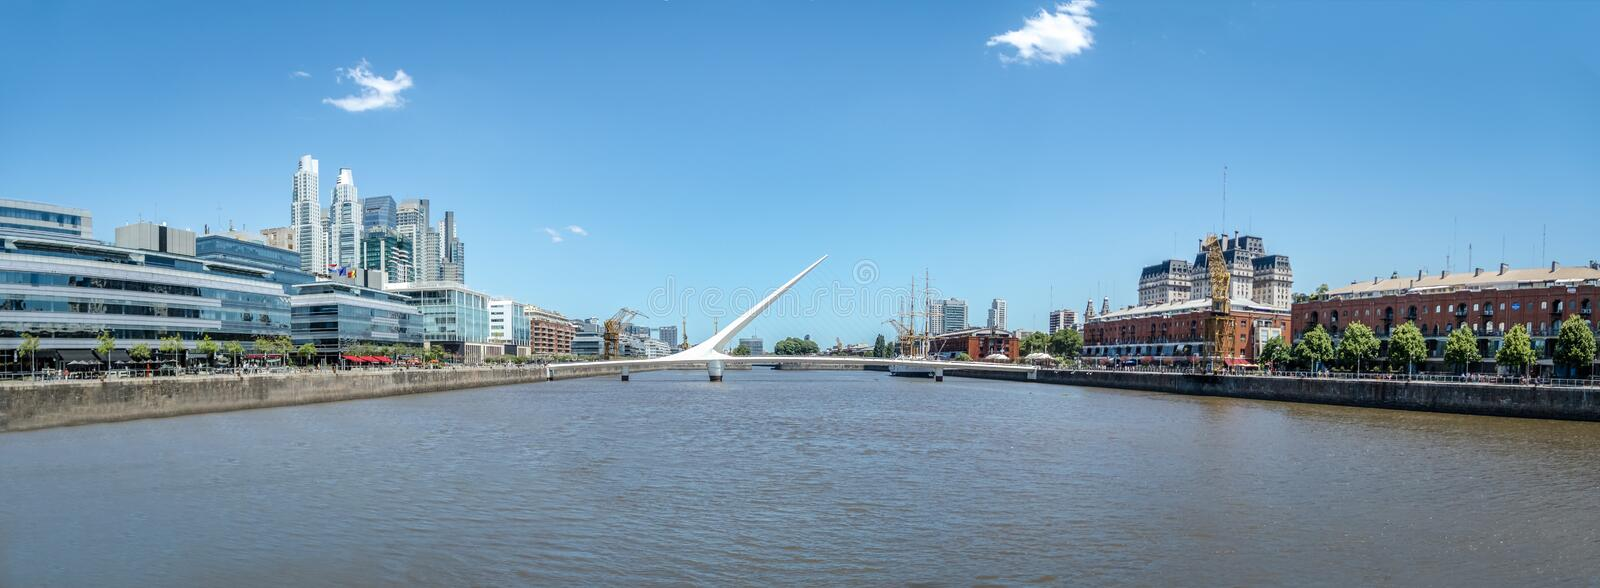 Panoramic view of Puerto Madero - Buenos Aires, Argentina stock photos